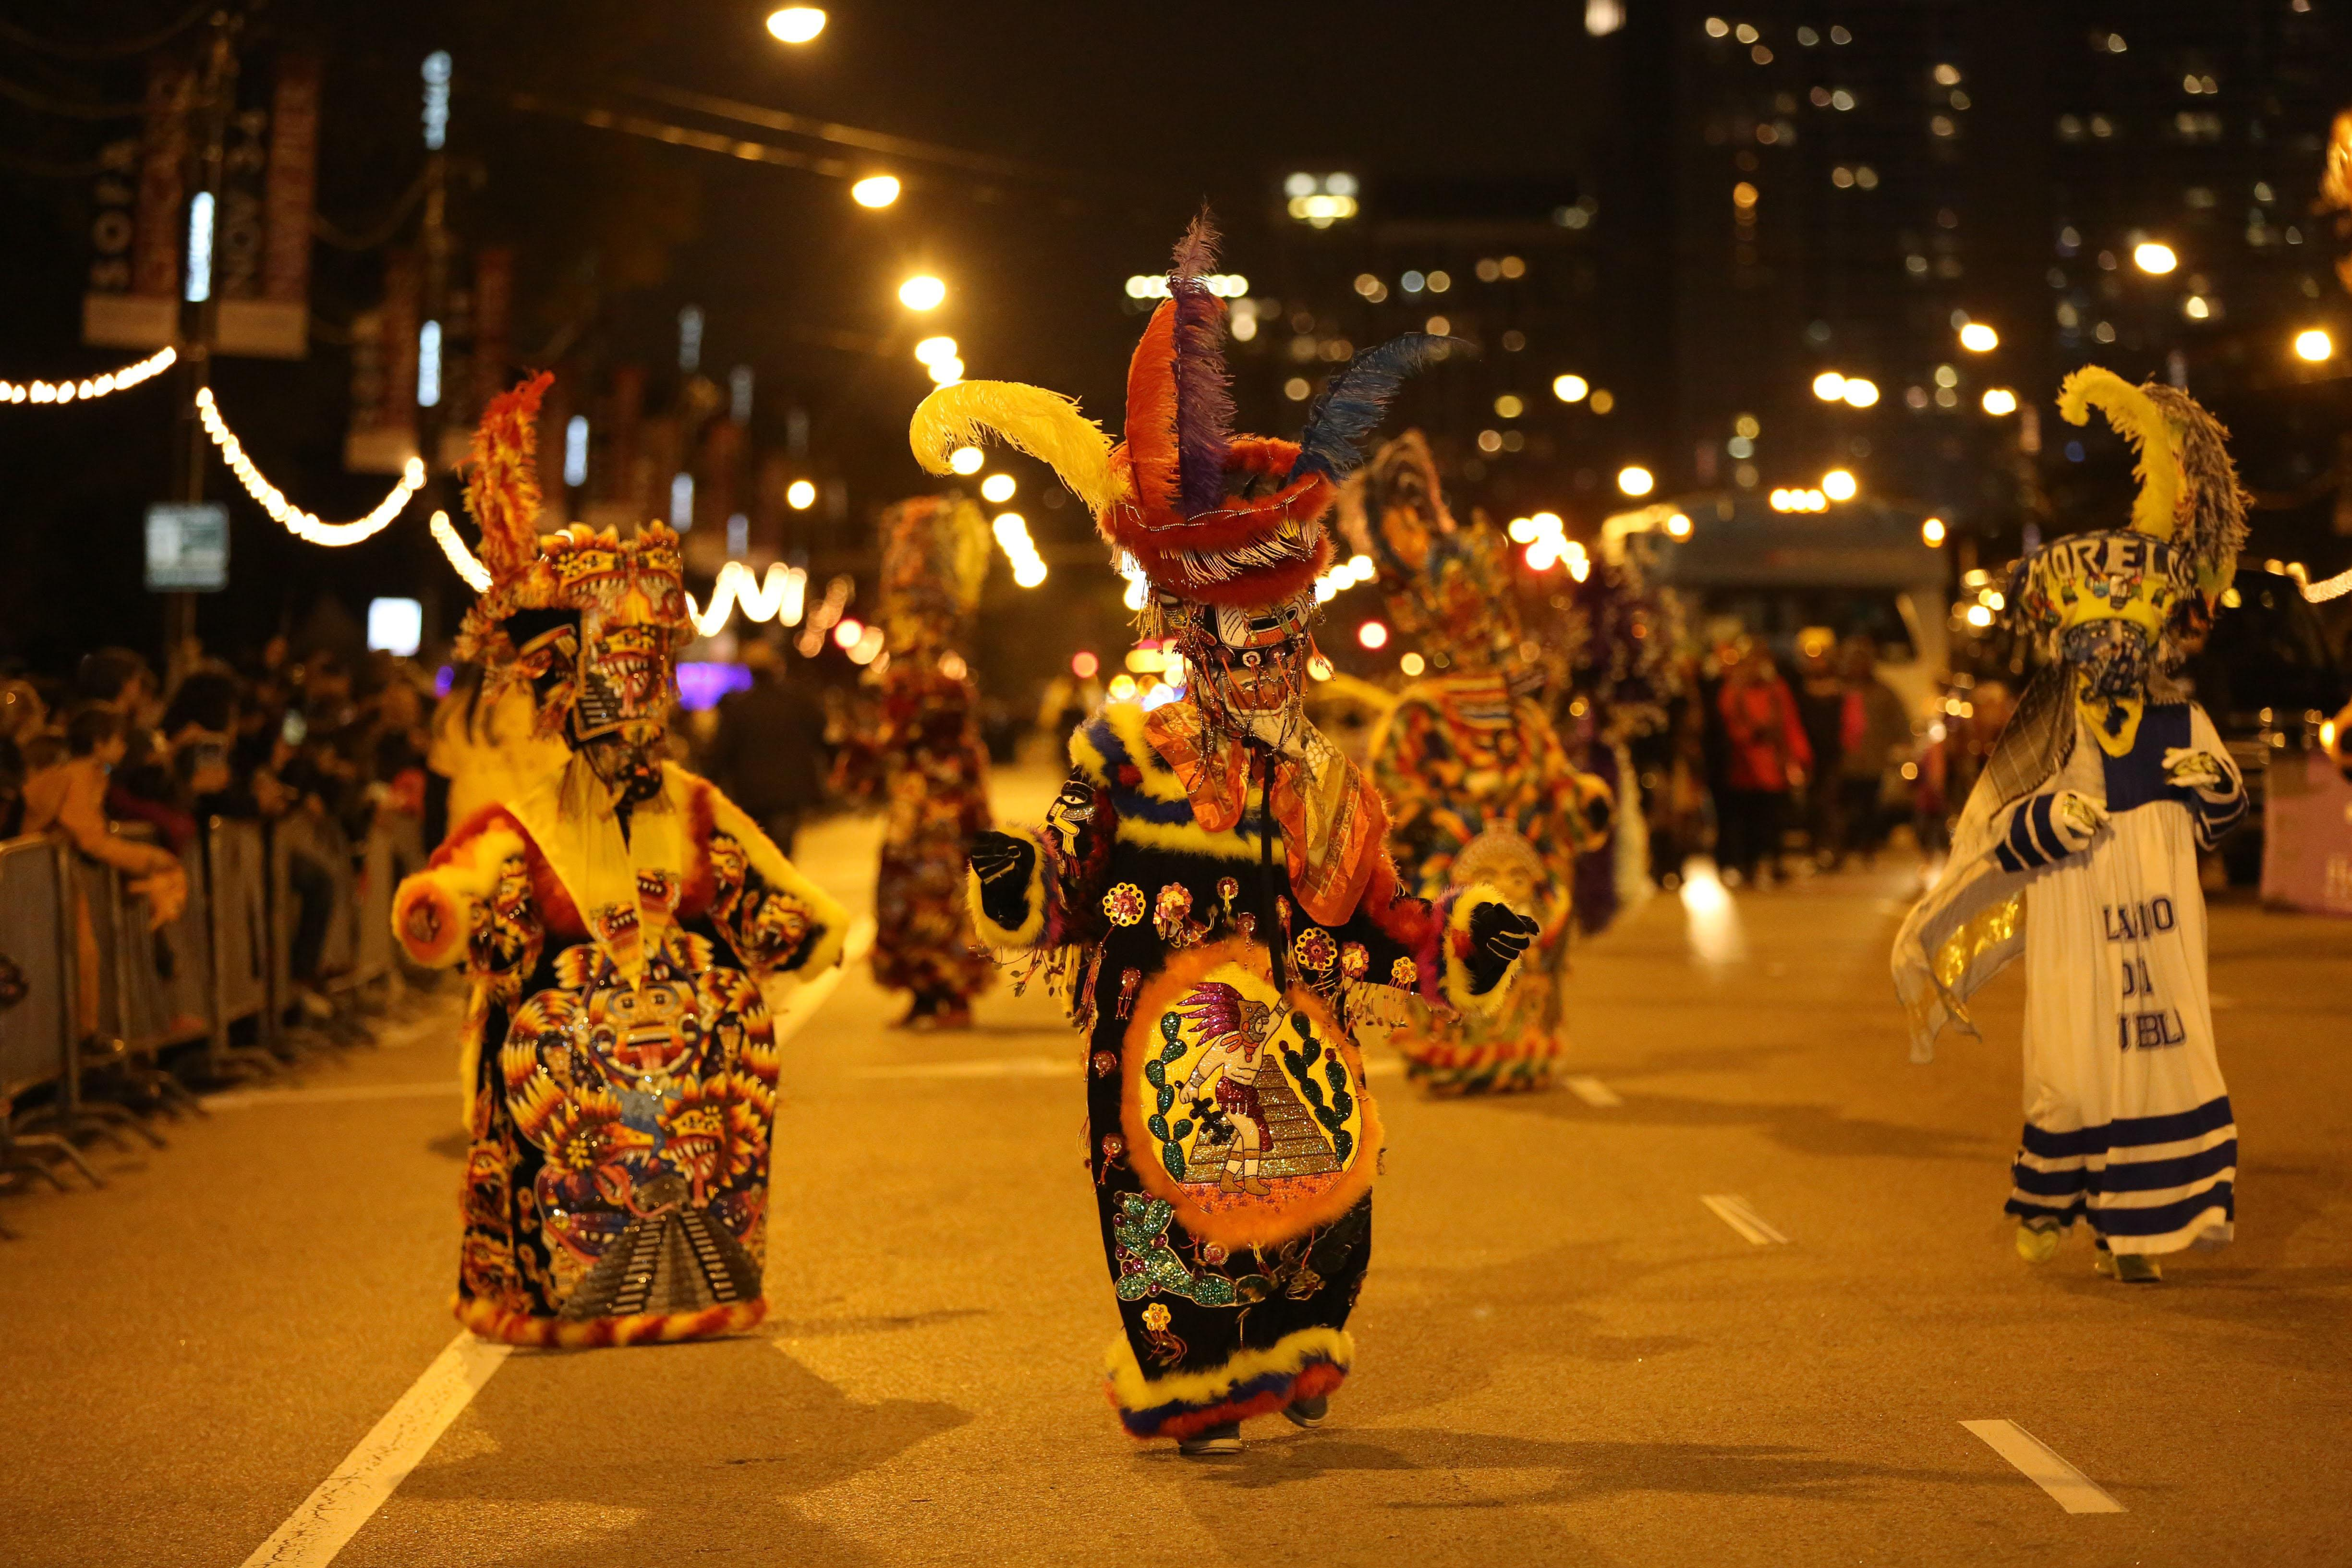 Spectacle after sundown: Don't miss the Arts in the Dark parade Saturday.